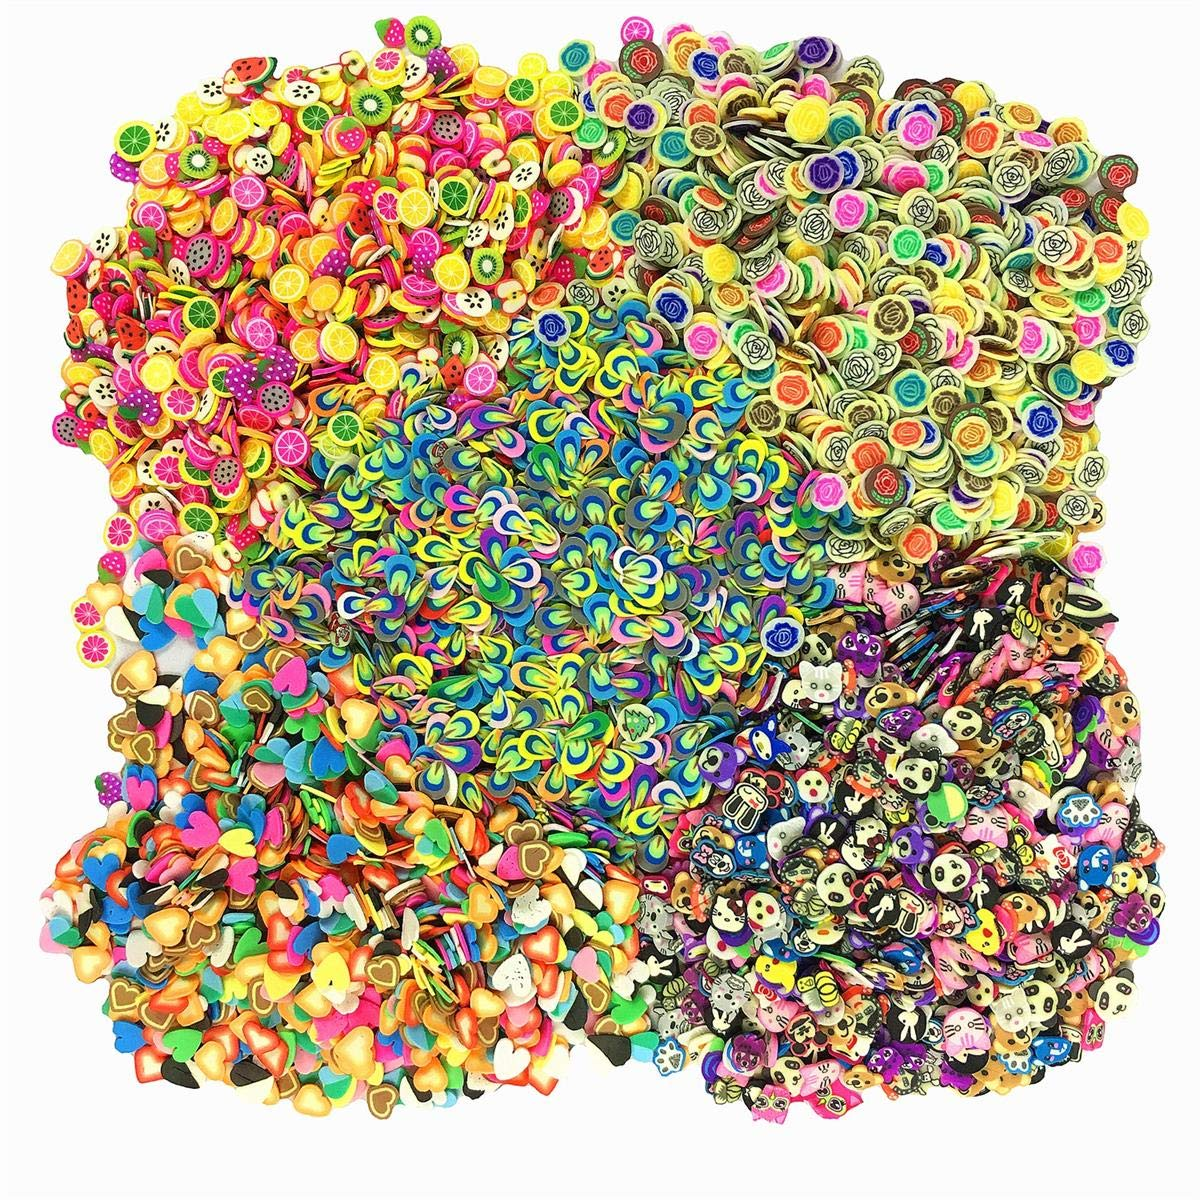 5000 Pcs (1000Pcs/Pack) 3D Polymer Fimo Slices DIY Nail Art Slime Supplies Charms Slime Making Kit Decoration Arts Crafts(Fruit,Rose,Love,Animal,Feather) by Sunnyproduct